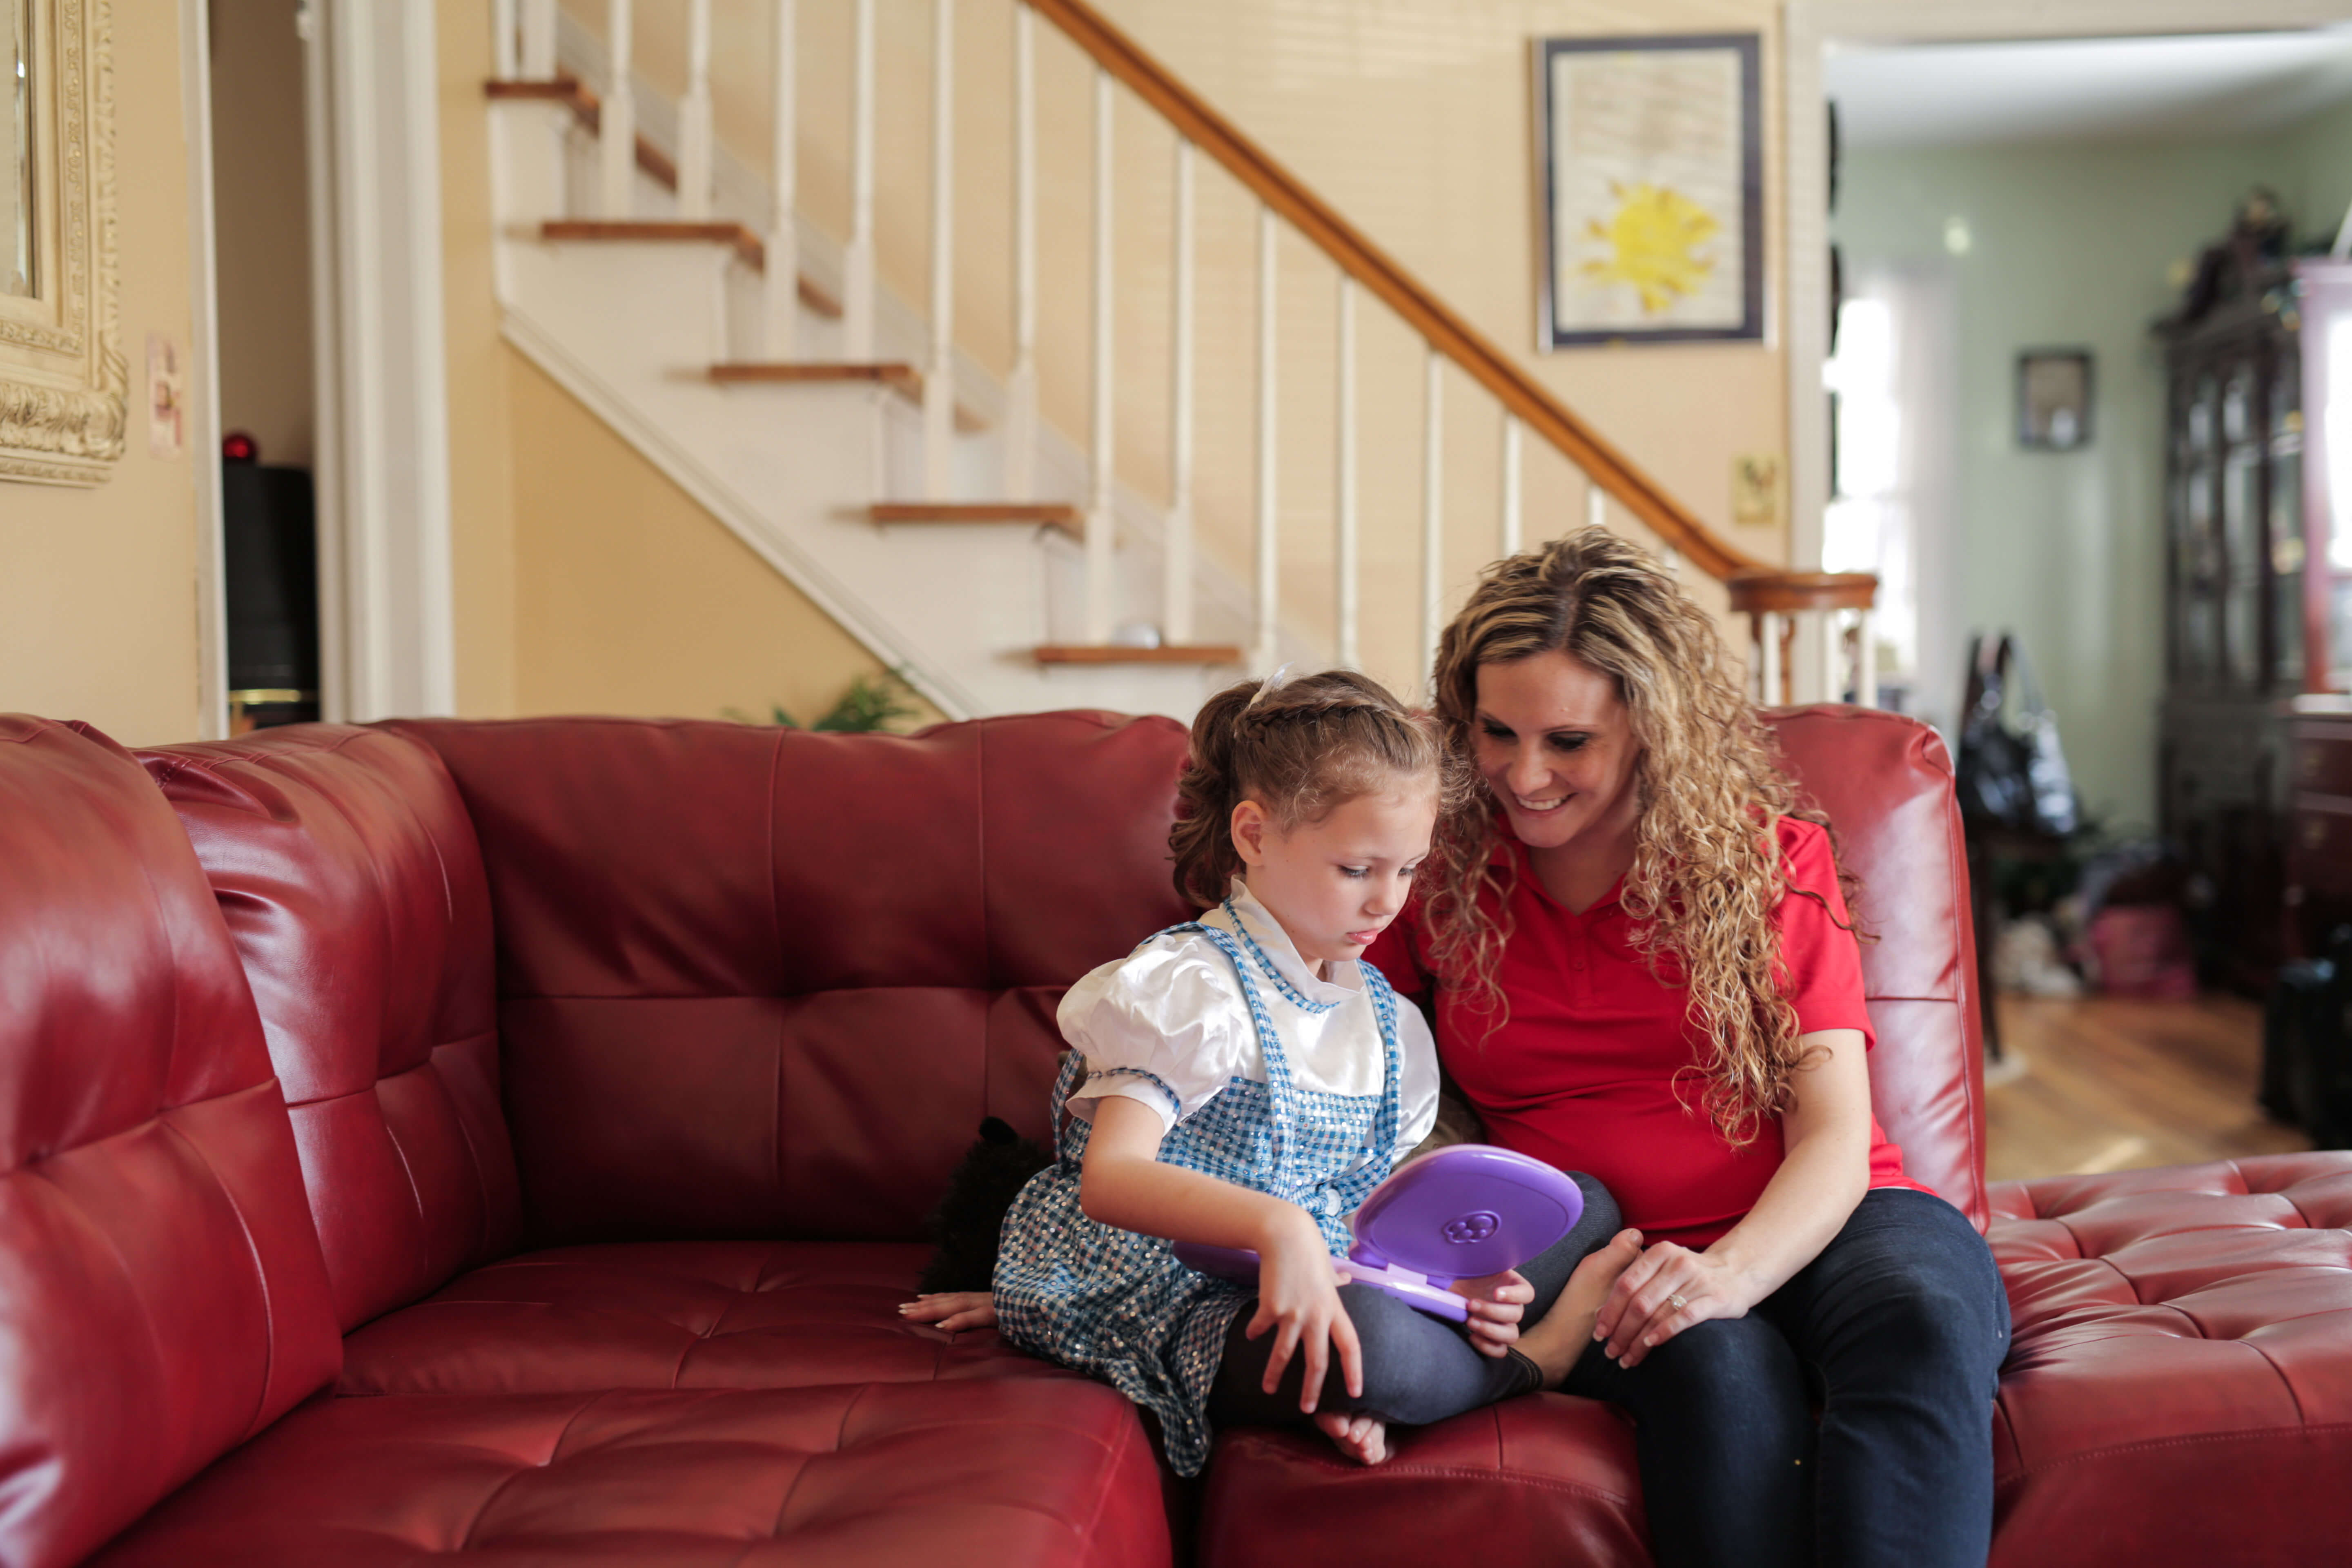 Child with special needs gets home care support.